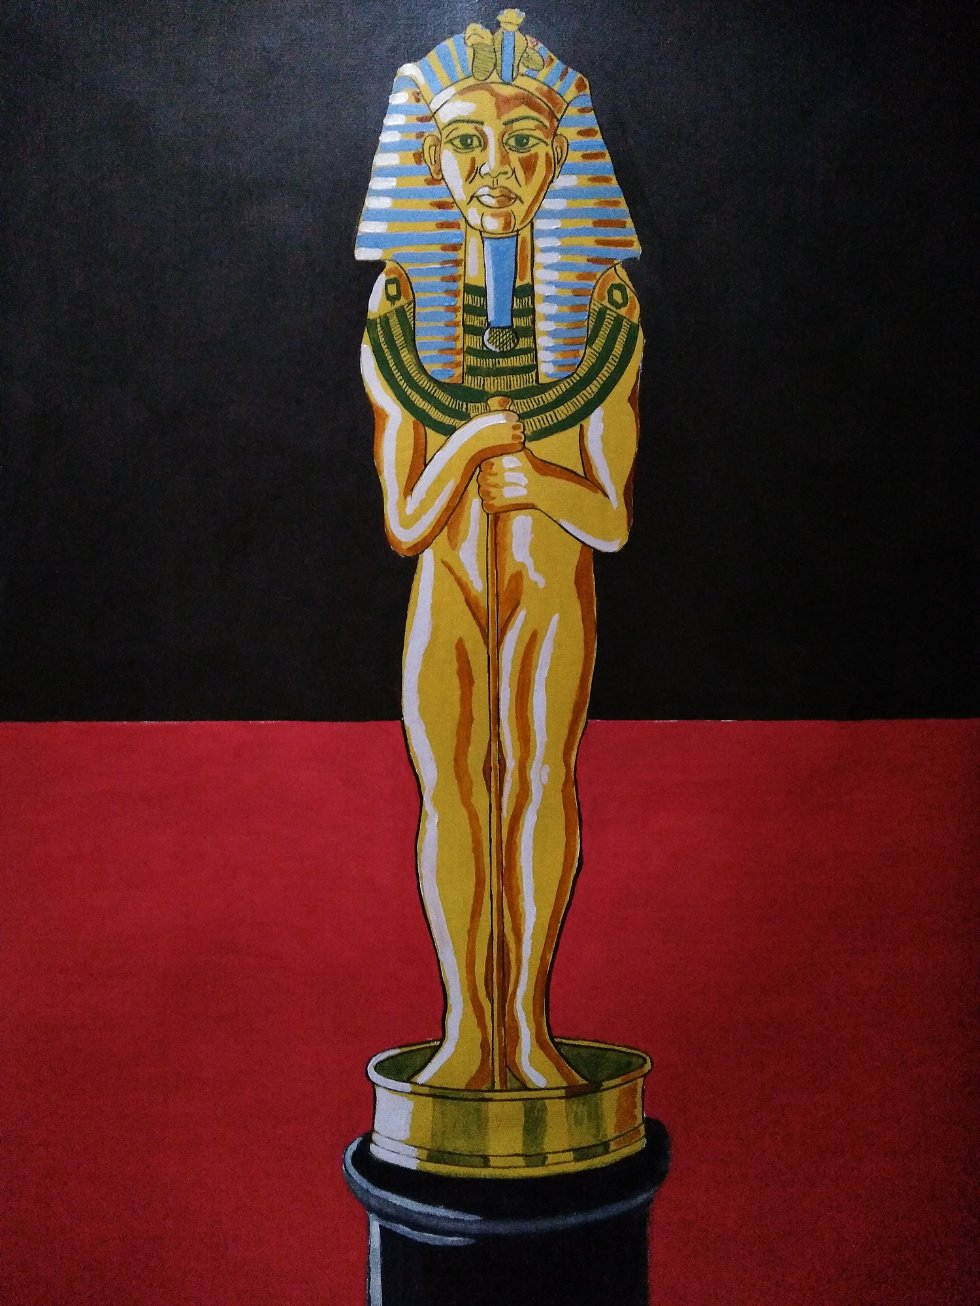 PHARA-OSCAR by SPANGLISH ART GALLERY  - THIS PICTURE IS INSPIRED IN A WORK OF SALVADOR DALI. SHOWS THE PHARAOH TUTAN-KAMON POSING AS AN OSCAR. OÍLS ON PAPER, 50X70CMS, VARNISHED, UNFRAMED. (JUST THE PAPER). - painting, oils, fantasy, pharaoh, tutankamon, egypt, surrealism, dali, ooscars